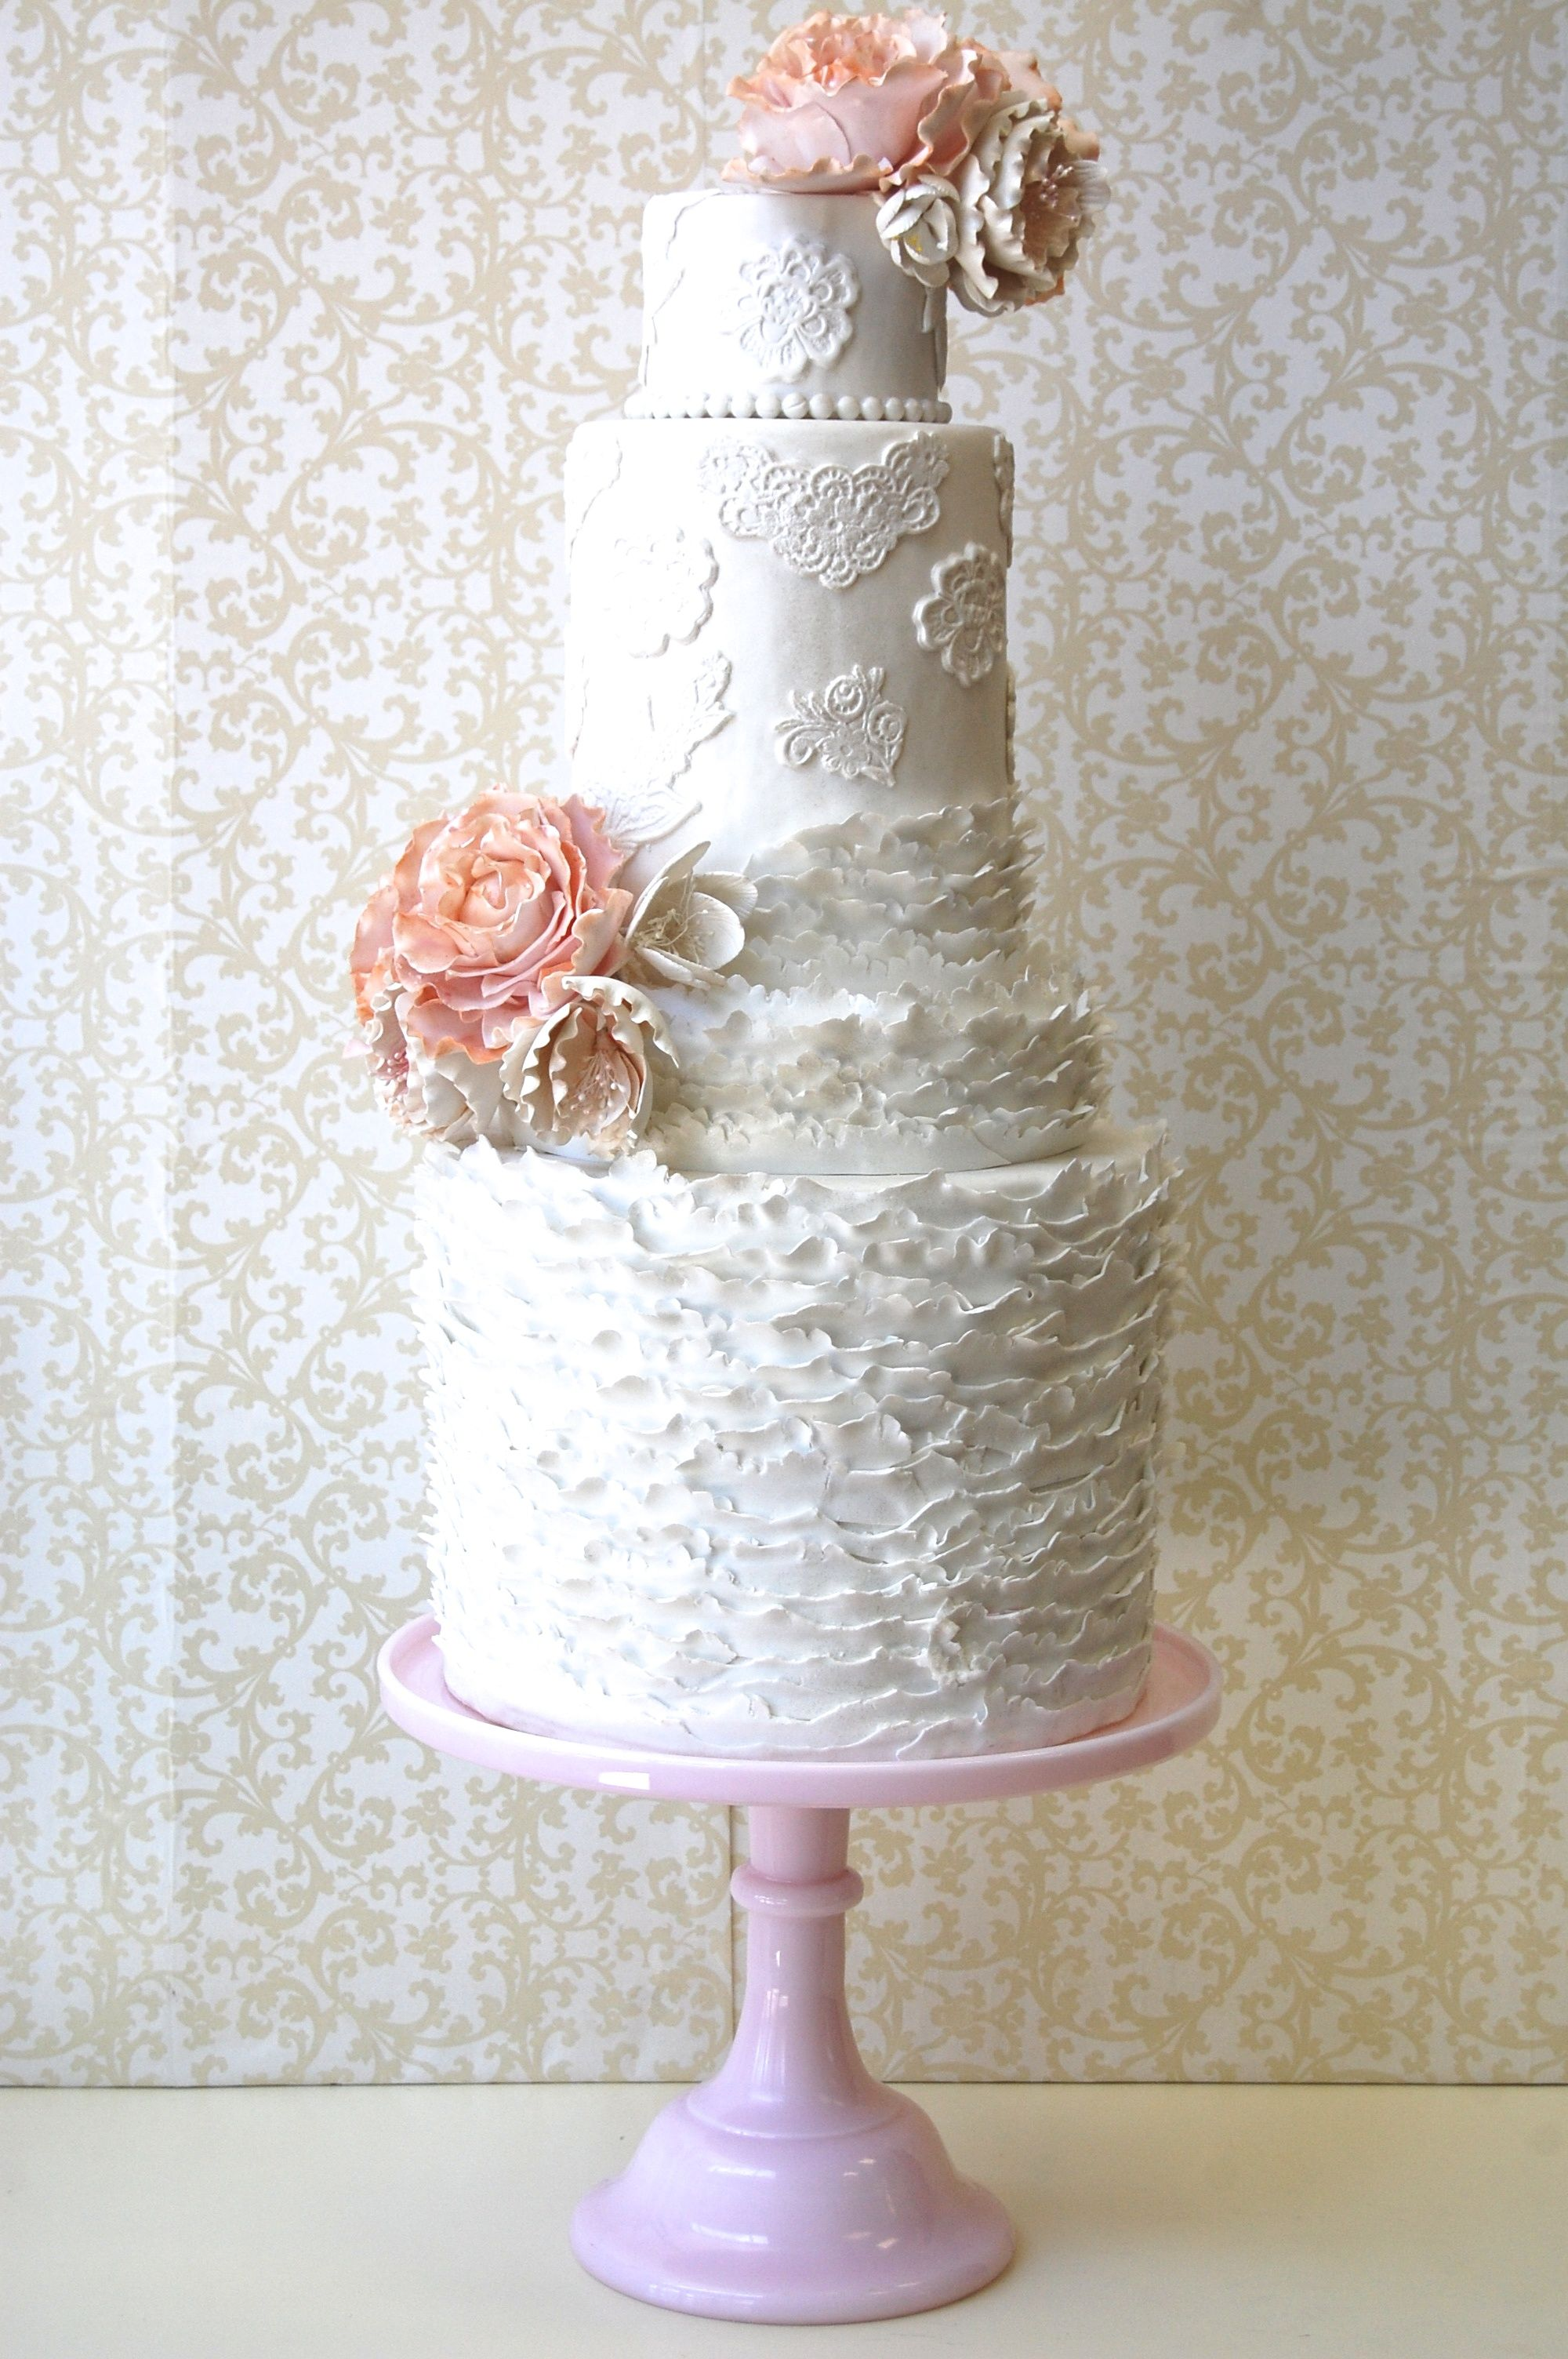 Ruffle Pink Flowers Wedding Cake Cakes Of All Kinds For Every